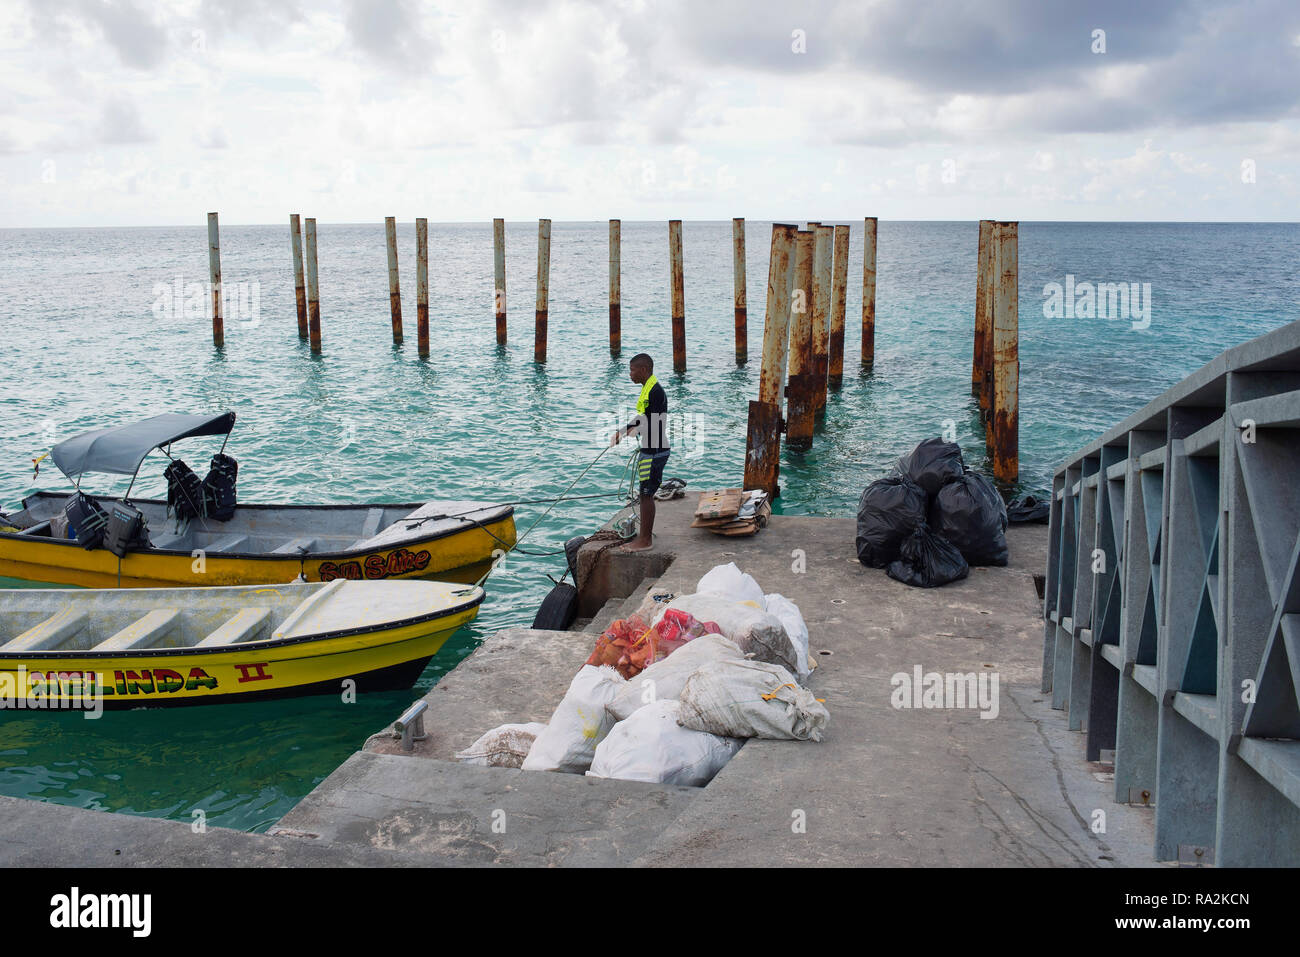 Behind the scenes of a popular seaside destination: local man working on taking away rubbish bags. Johnny Cay, San Andrés island, Colombia. Oct 2018 - Stock Image